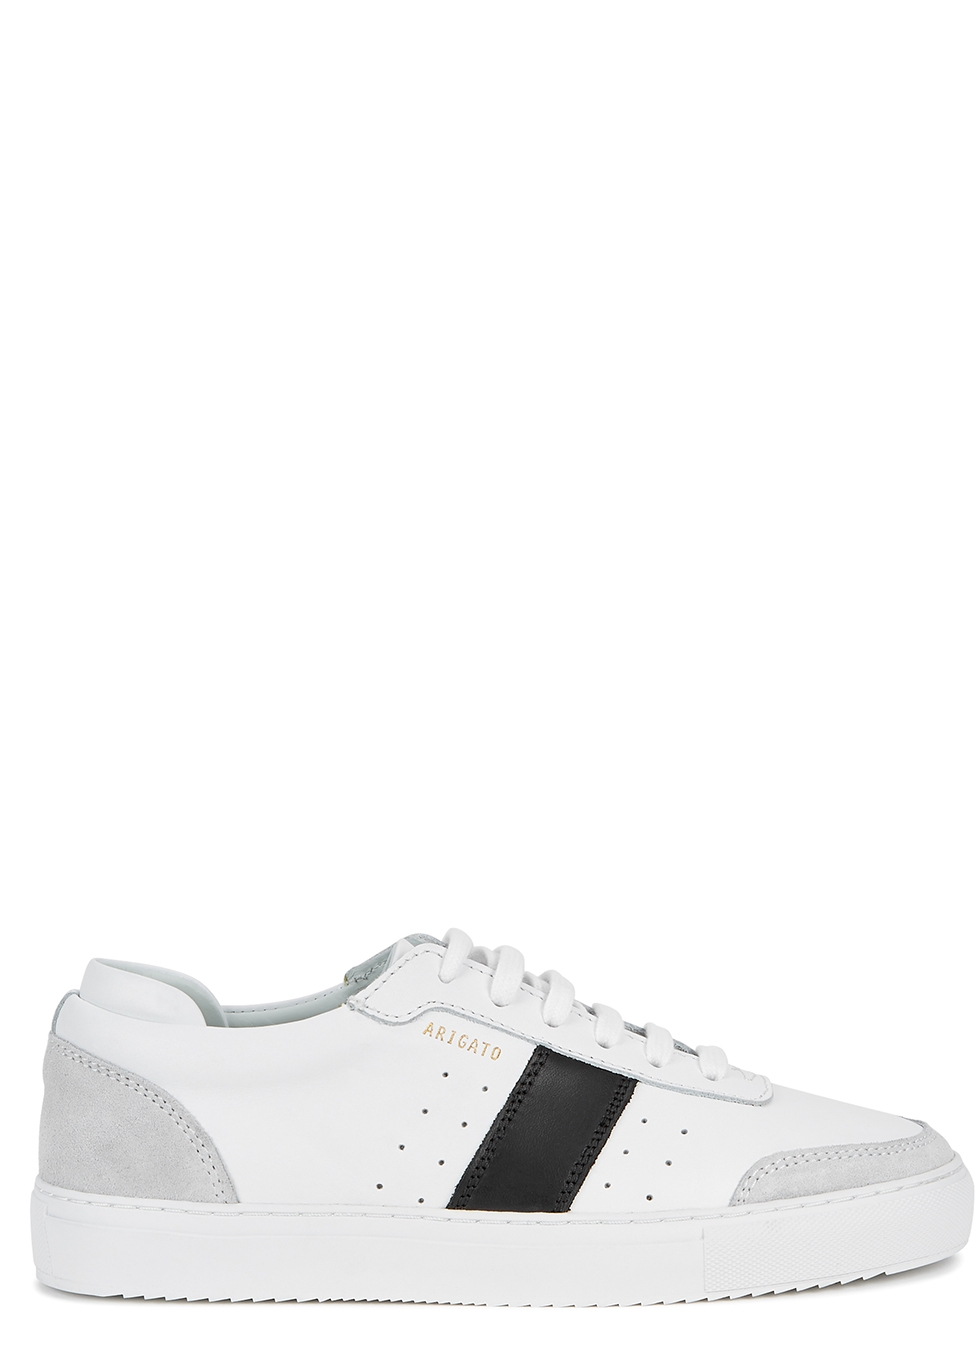 Dunk white leather sneakers